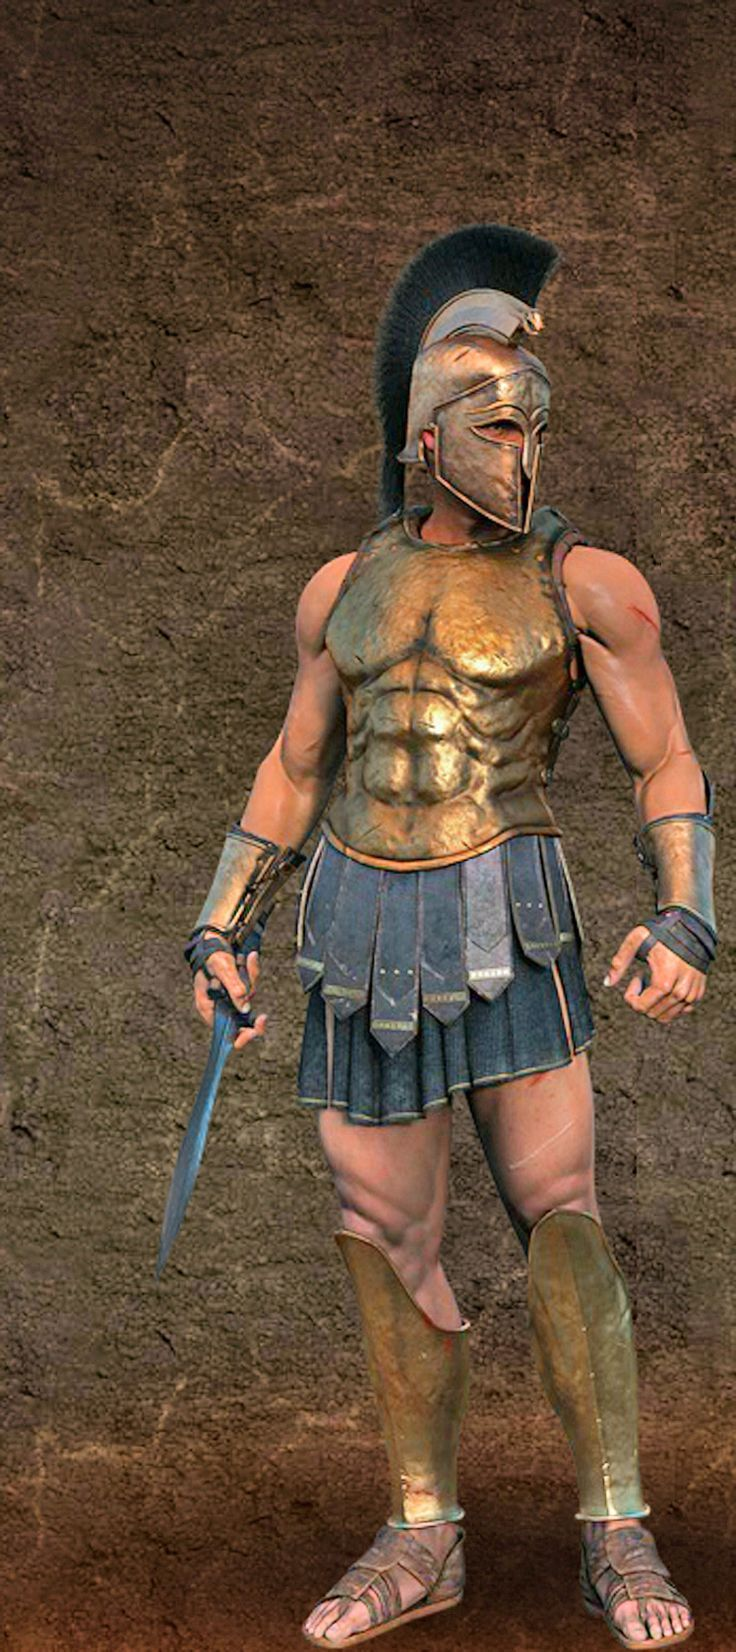 compare roman gladiators to modern mma Who was tougher, roman legionary or a modern spec ops soldier  this is precisely why there are weight classes in boxing, wrestling, and mixed martial arts - the.